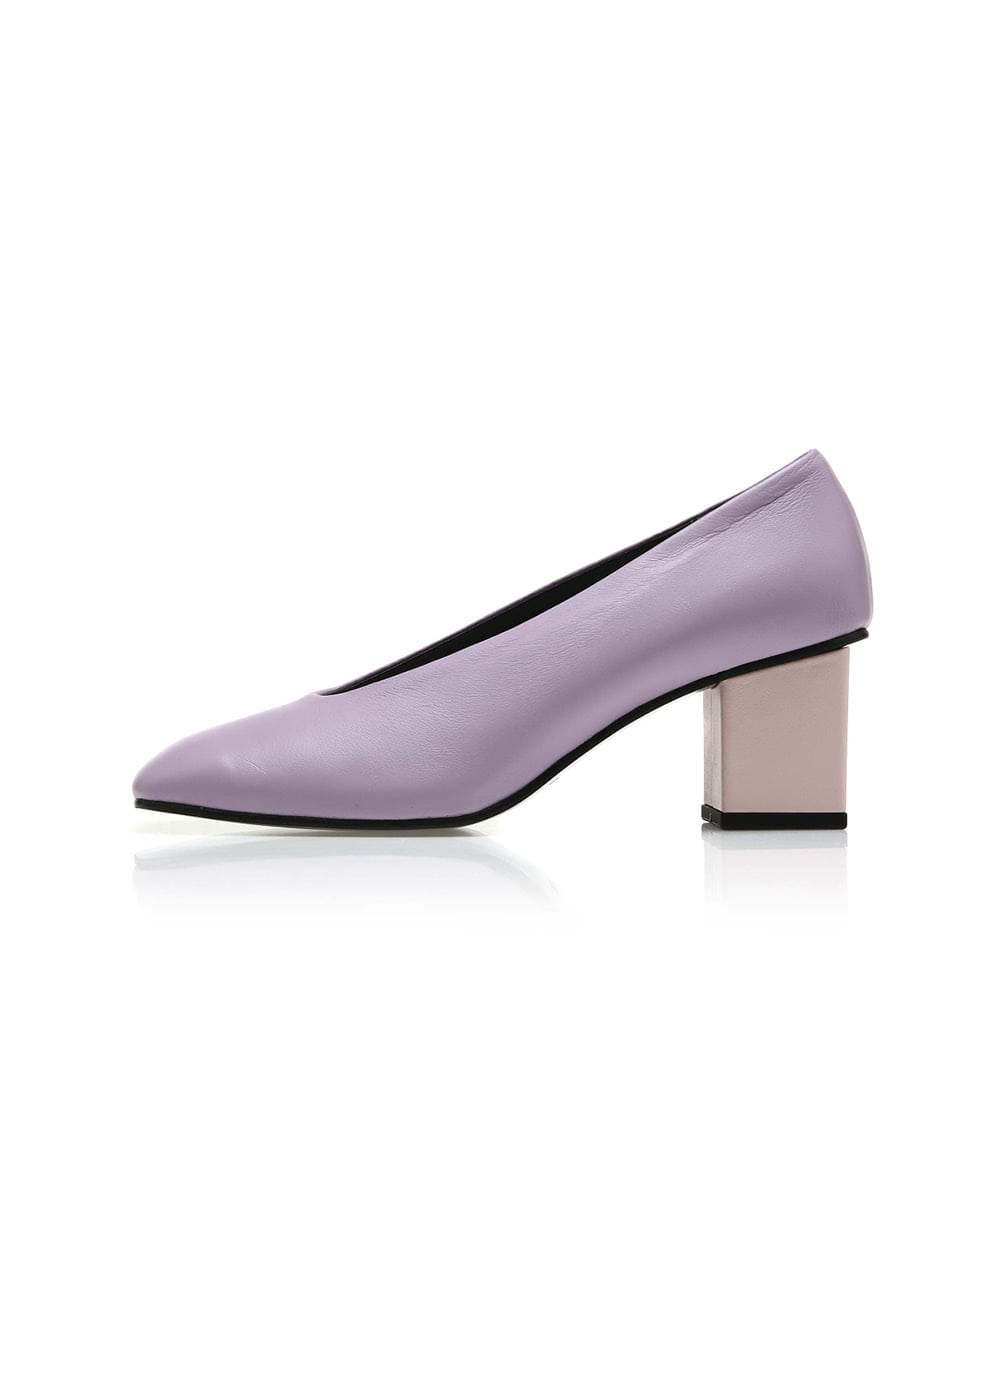 Elle-Meme Pumps / YY7S-P06 / 5 colors